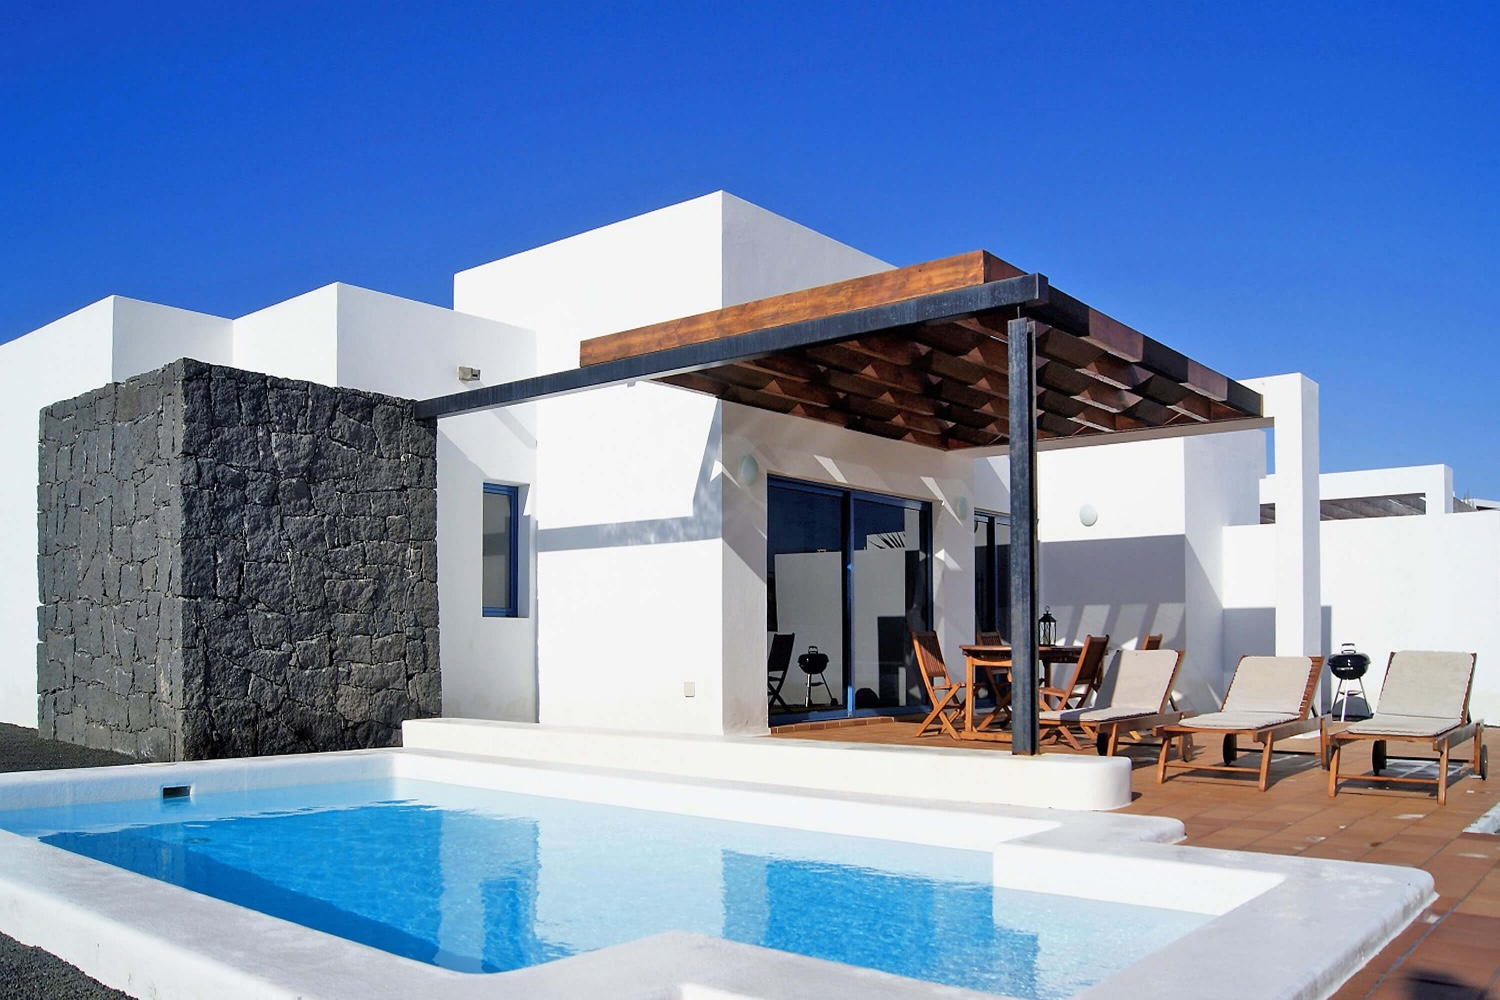 Two bedroom villa, located in a residential area with private heatable pool, air conditioning and Wifi